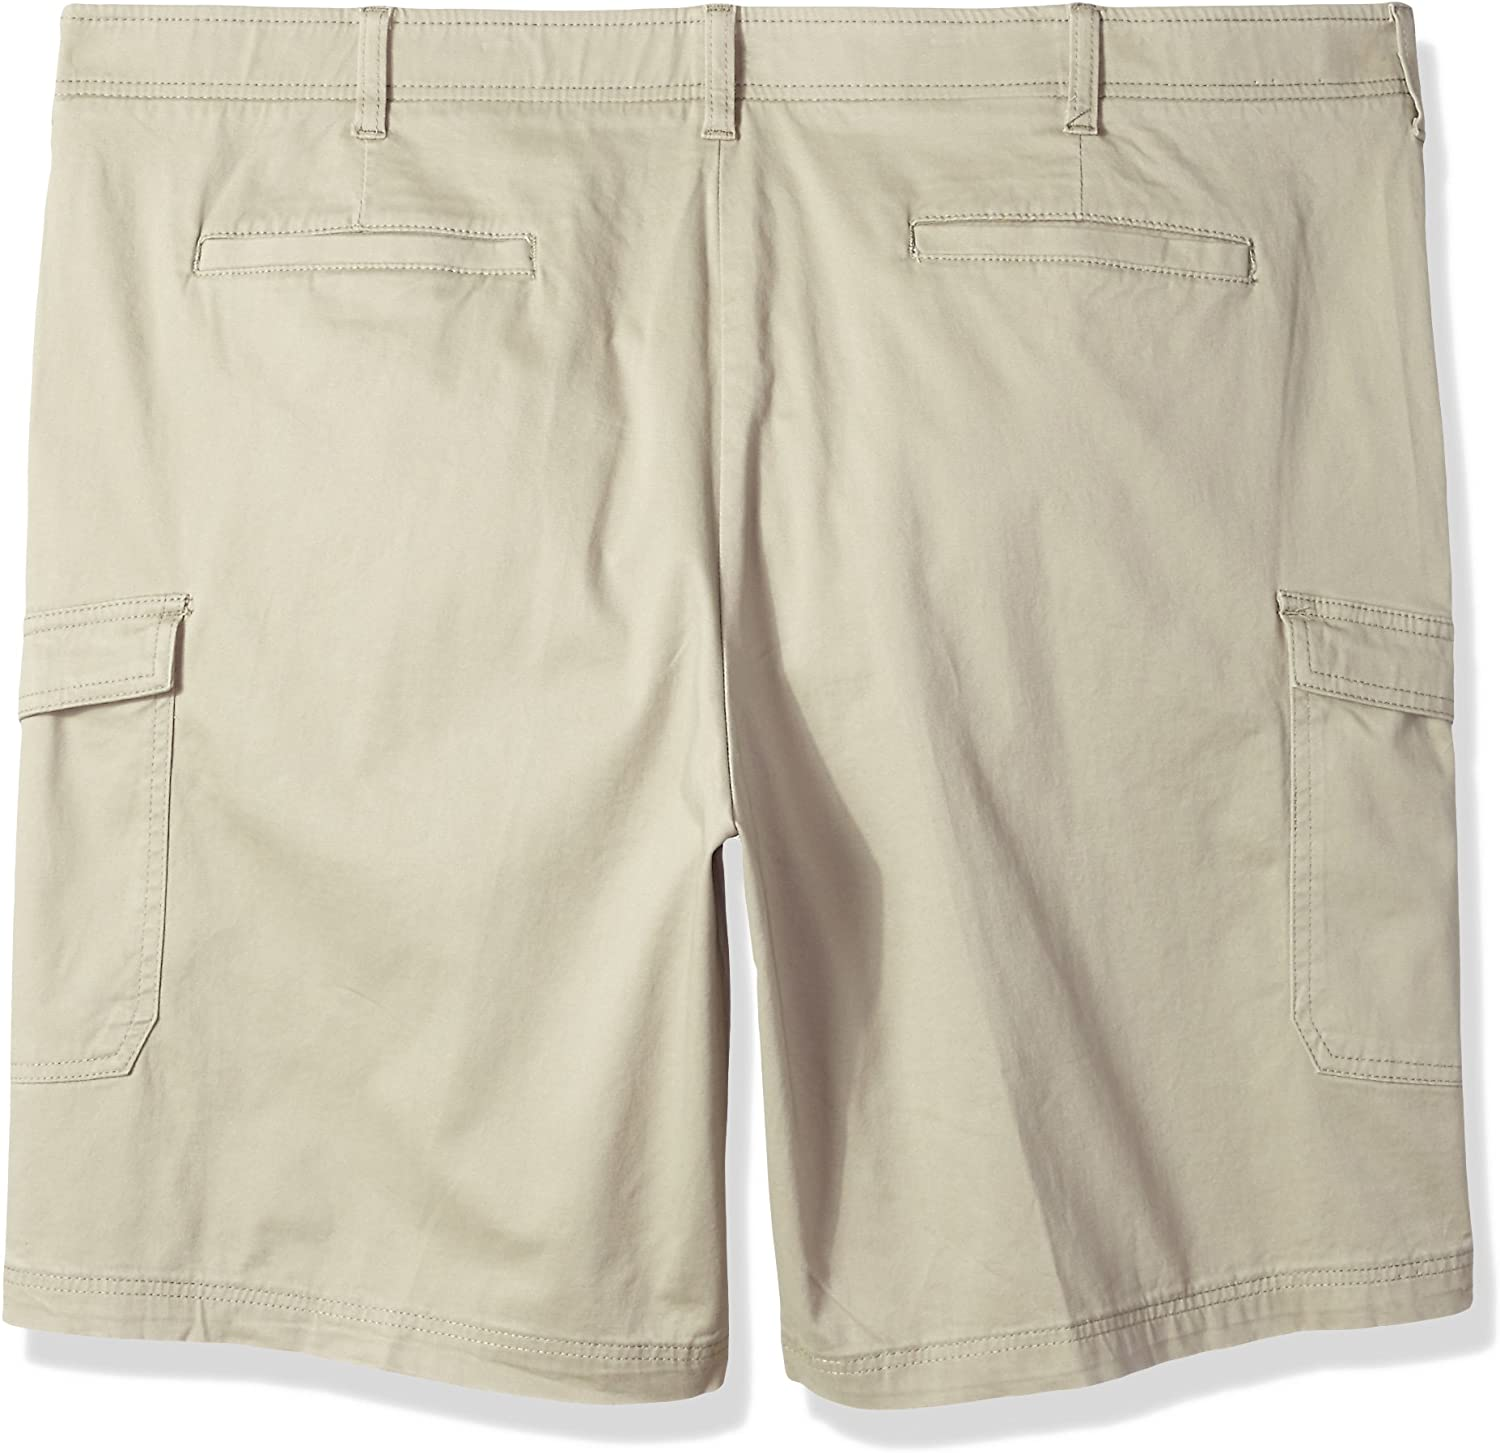 LEE Mens Big /& Tall Performance Series Extreme Comfort Cargo Short